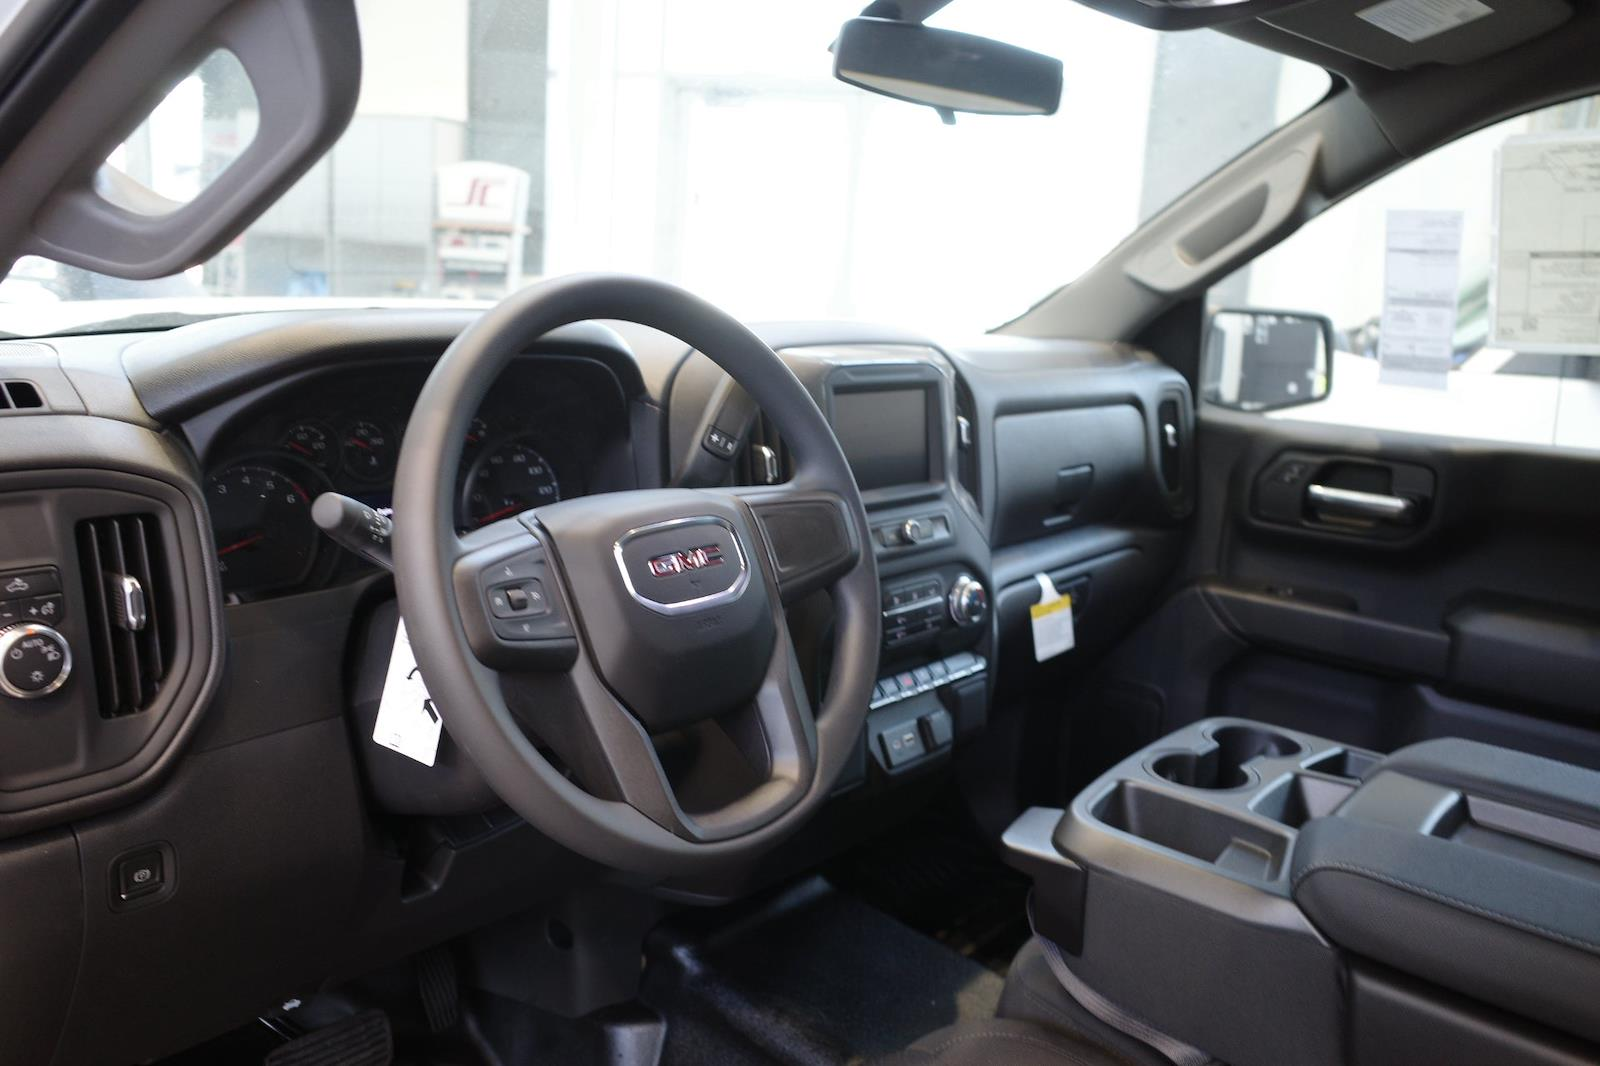 2021 GMC Sierra 1500 Regular Cab 4x2, Pickup #MT421 - photo 13